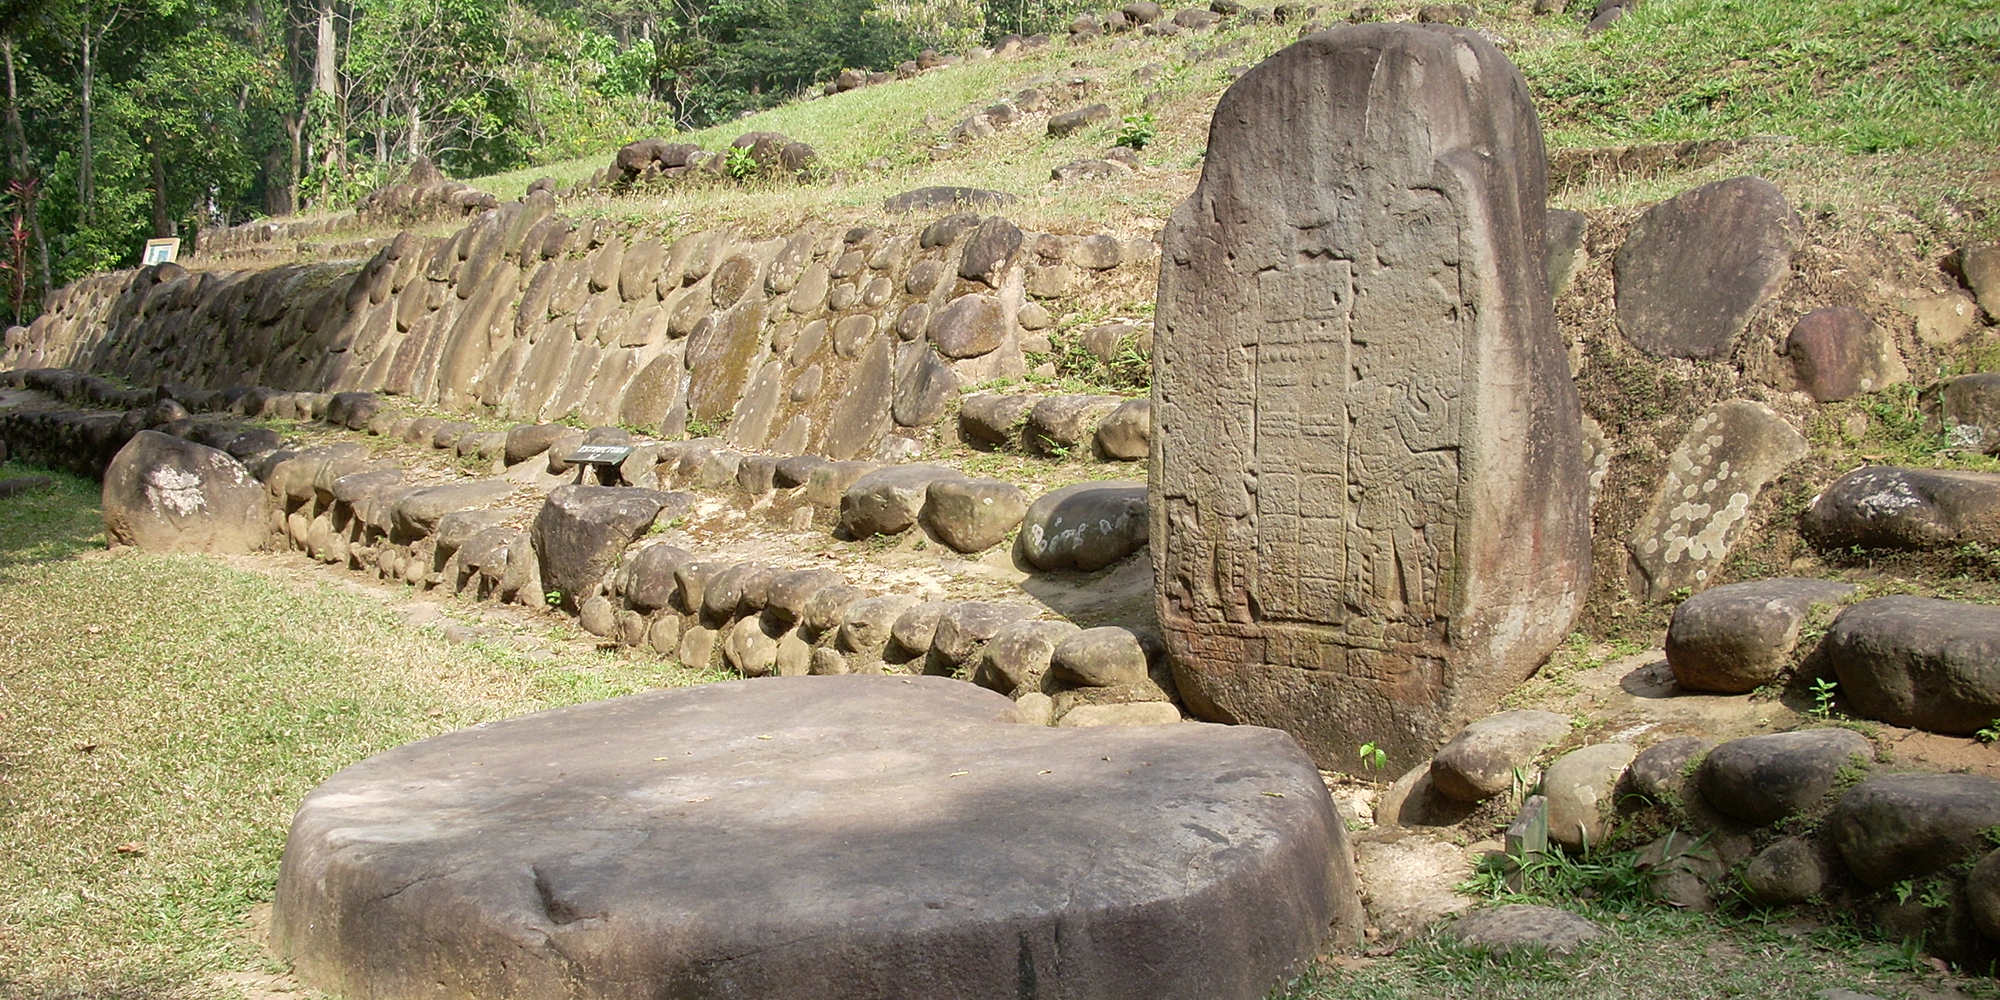 Stela 5 at Takalik Abaj, El Asintal, Retalhuleu, Guatemala, showing an early example of a Long Count date. Altar 8 lies before it. Image via wikimedia Commons